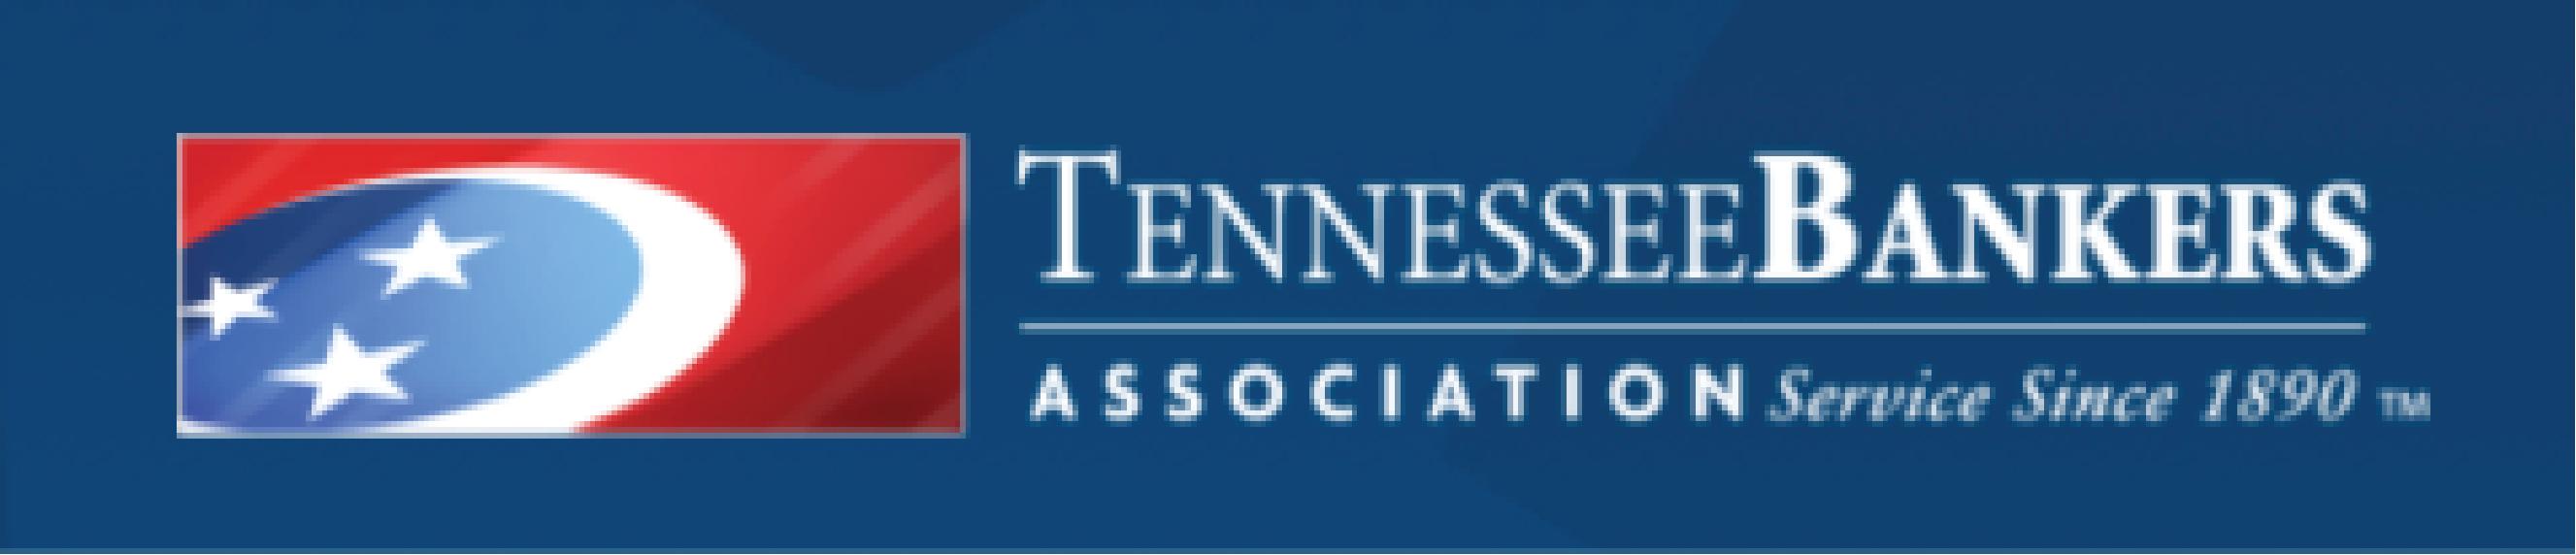 Tennessee Bankers